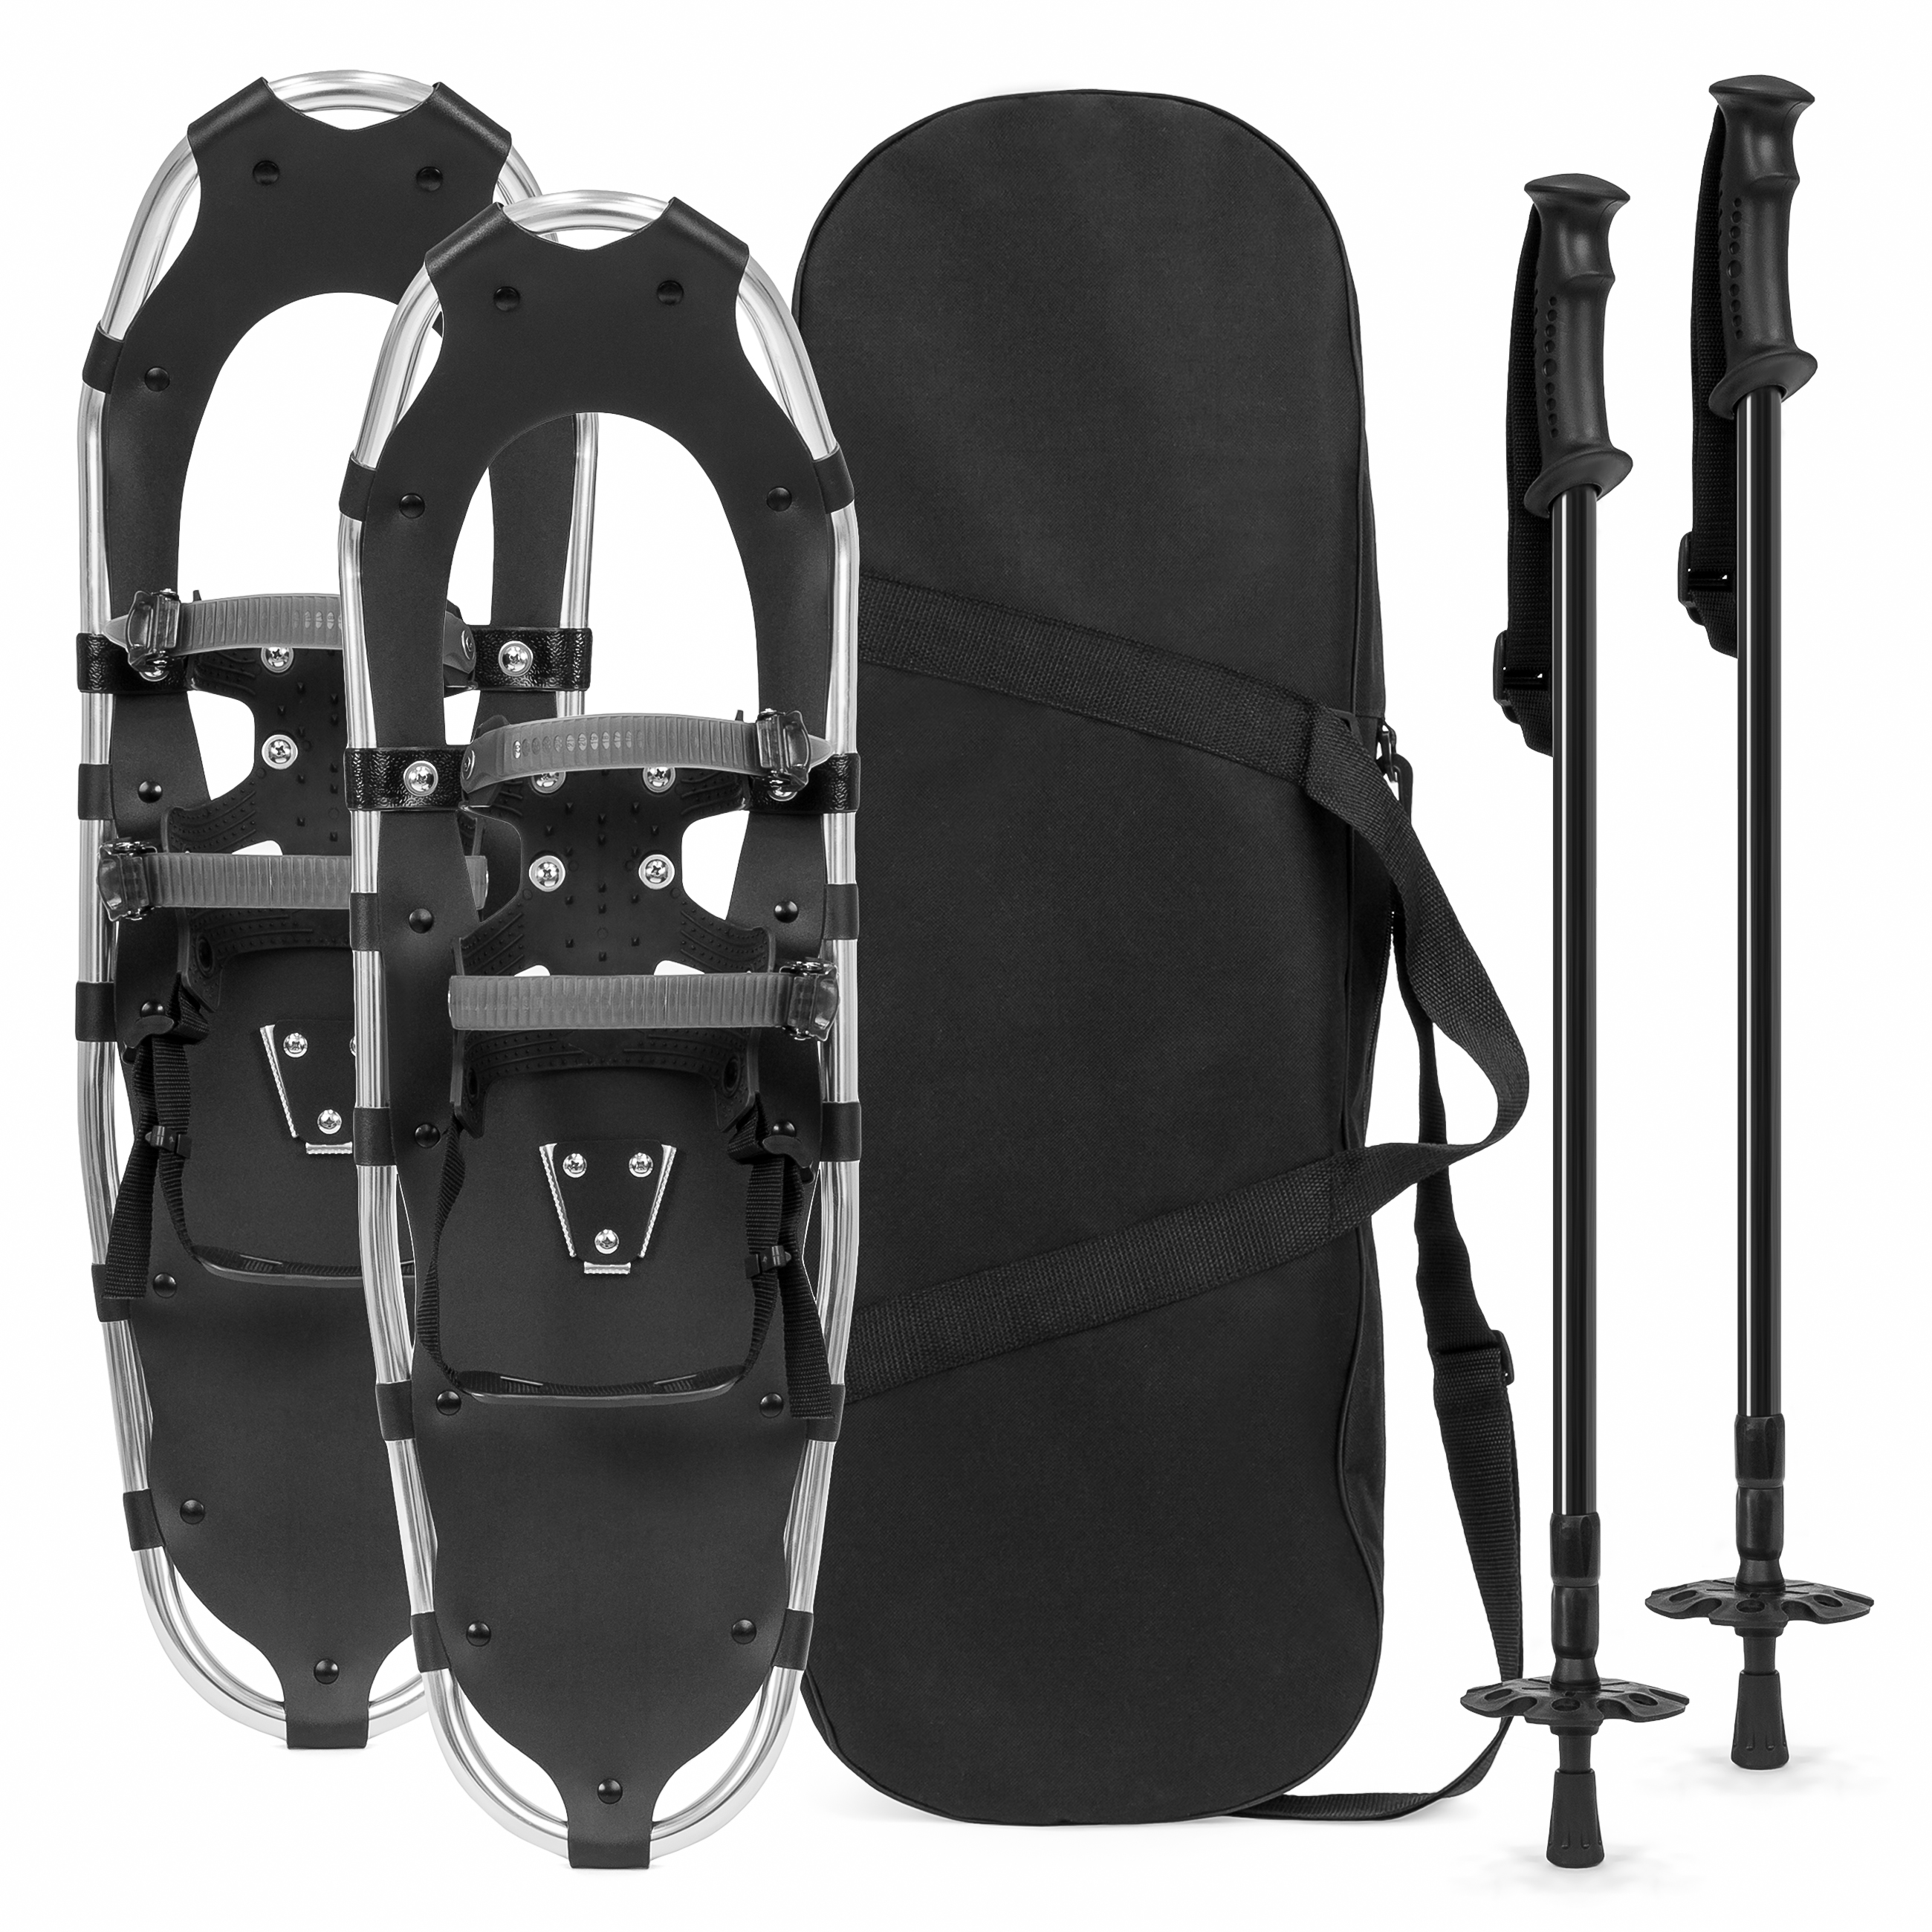 Best Choice Products 30in Unisex Aluminum Terrain Snowshoes Set w/ 2 Adjustable Trekking Poles and Carrying Bag - Silver